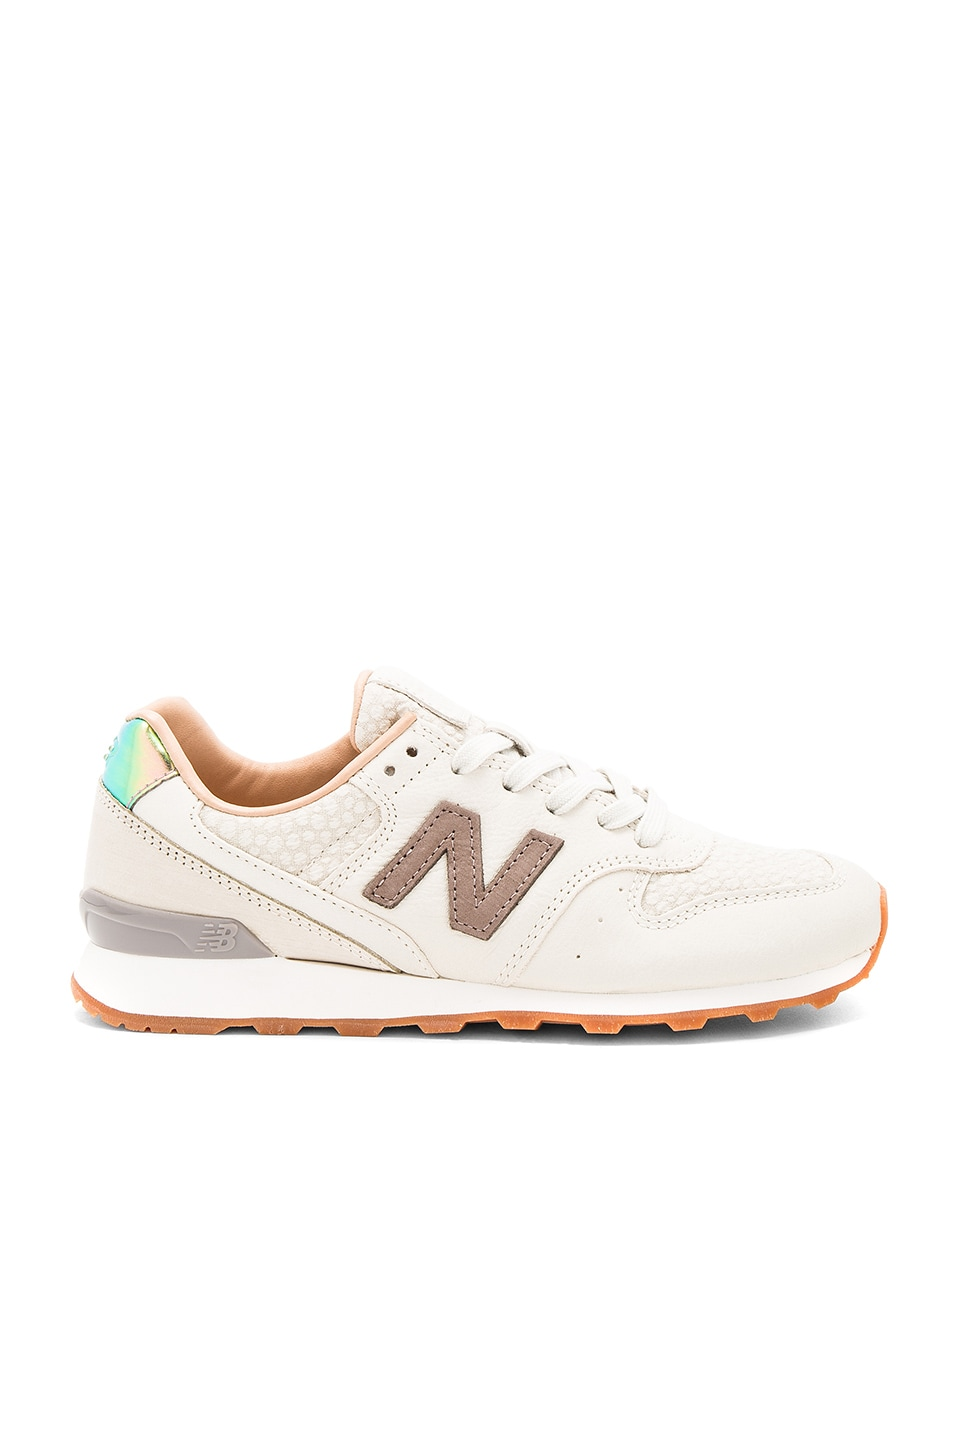 New Balance NB Grey Sneaker in Powder & Cresent